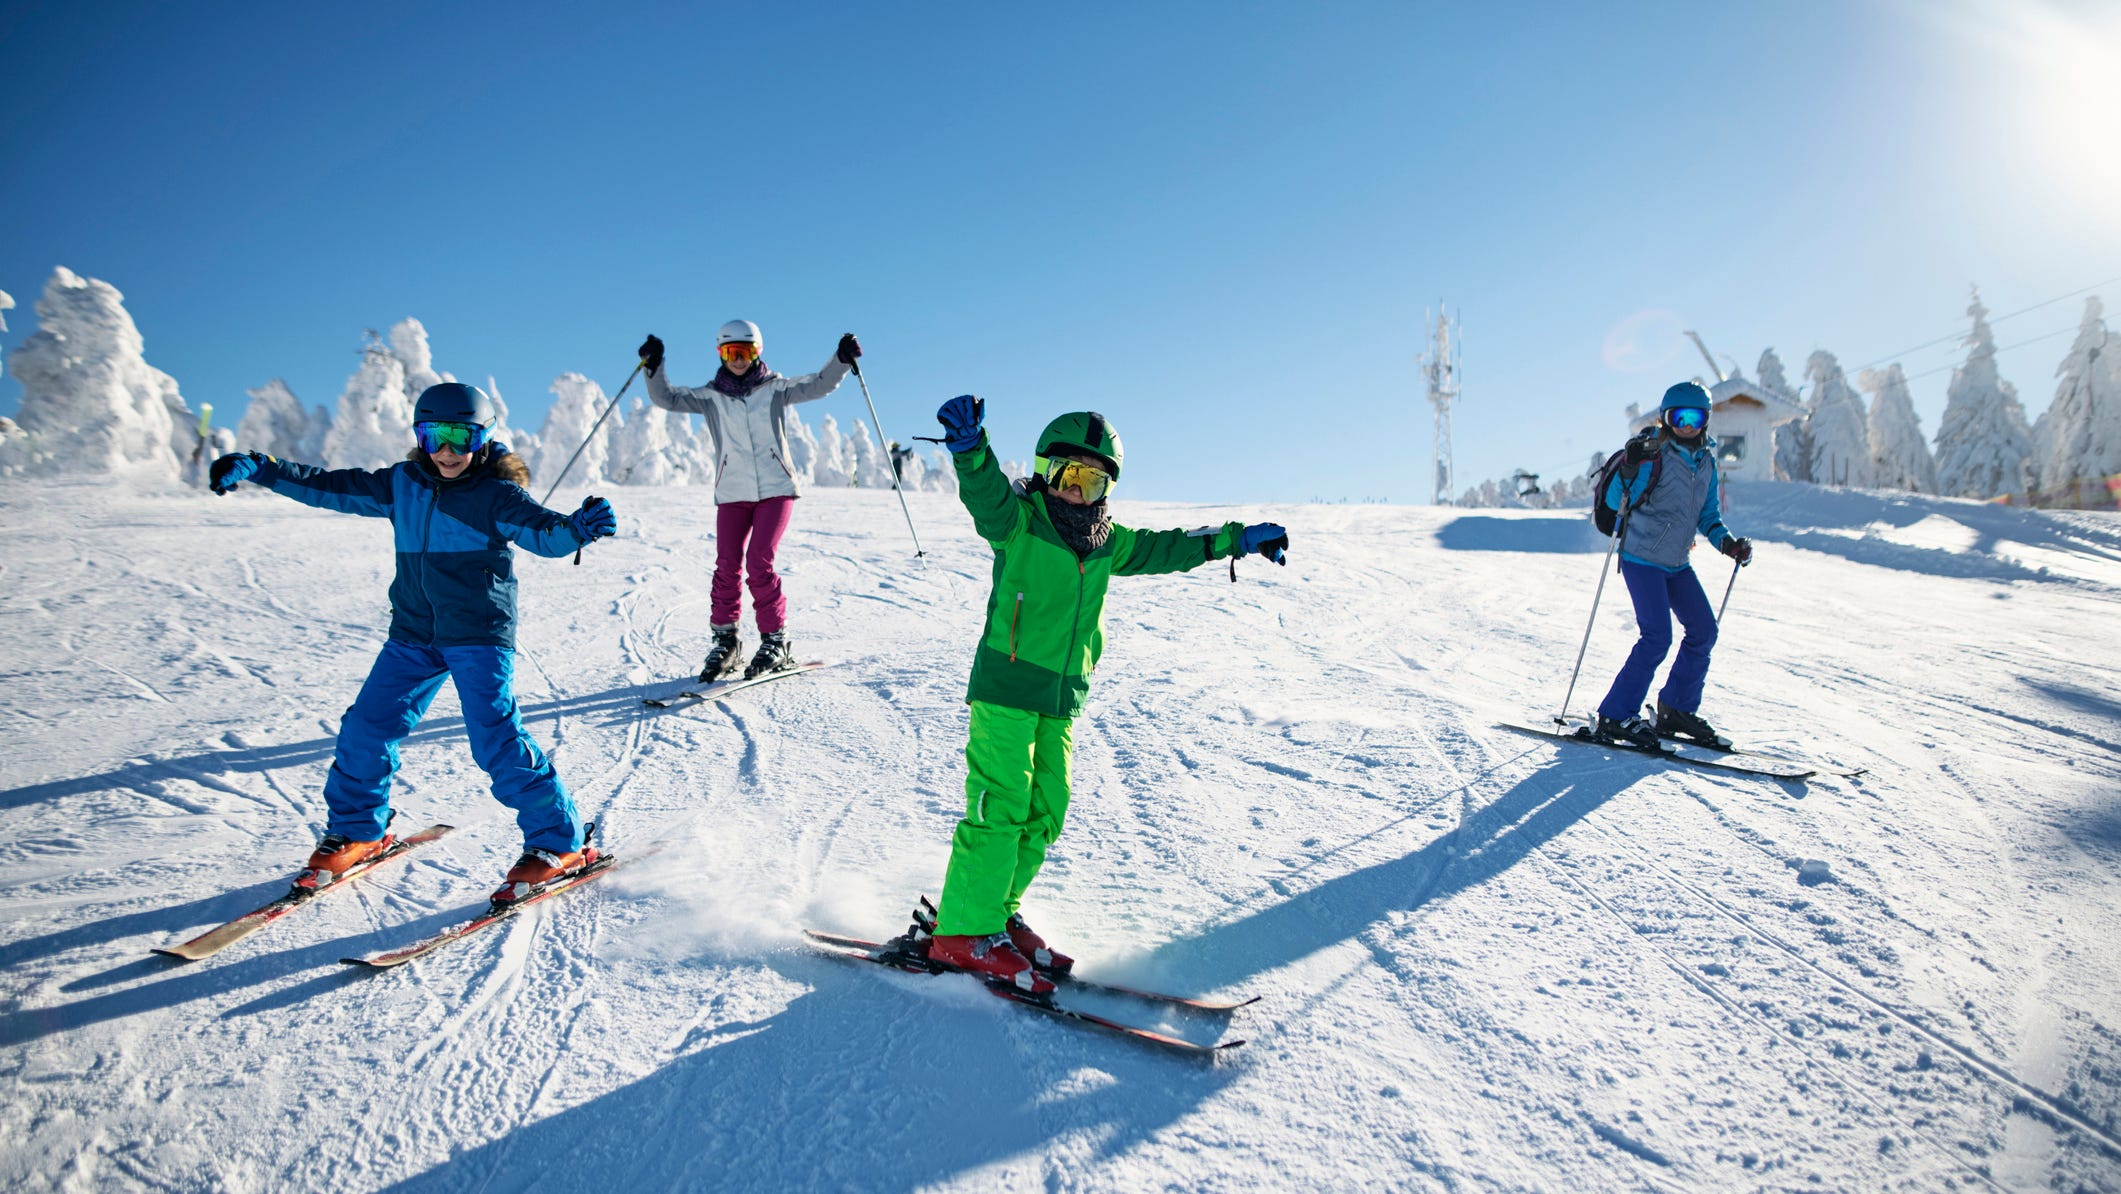 How to Improve Your Skiing by Snowboarding